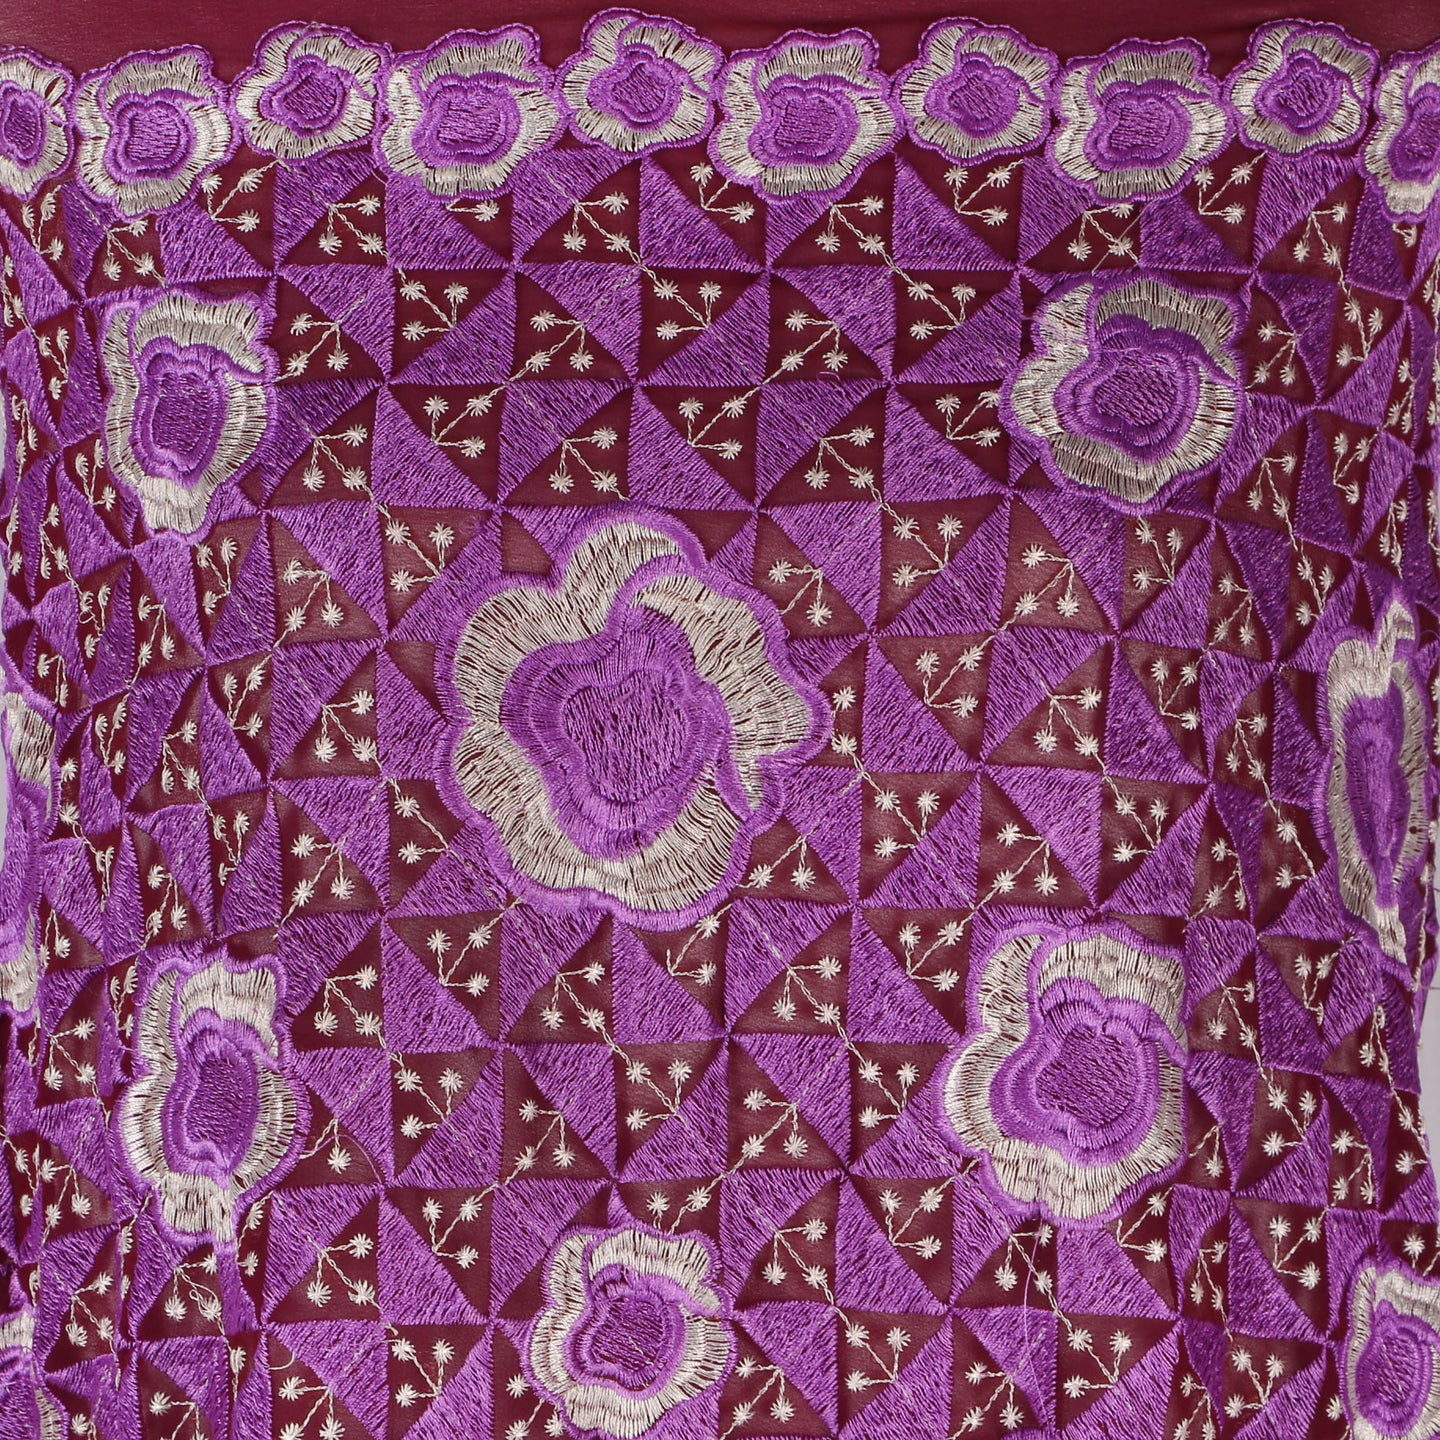 Machine Embroidered Fabric Design # 4128 -Purple  - 5 Yard Piece